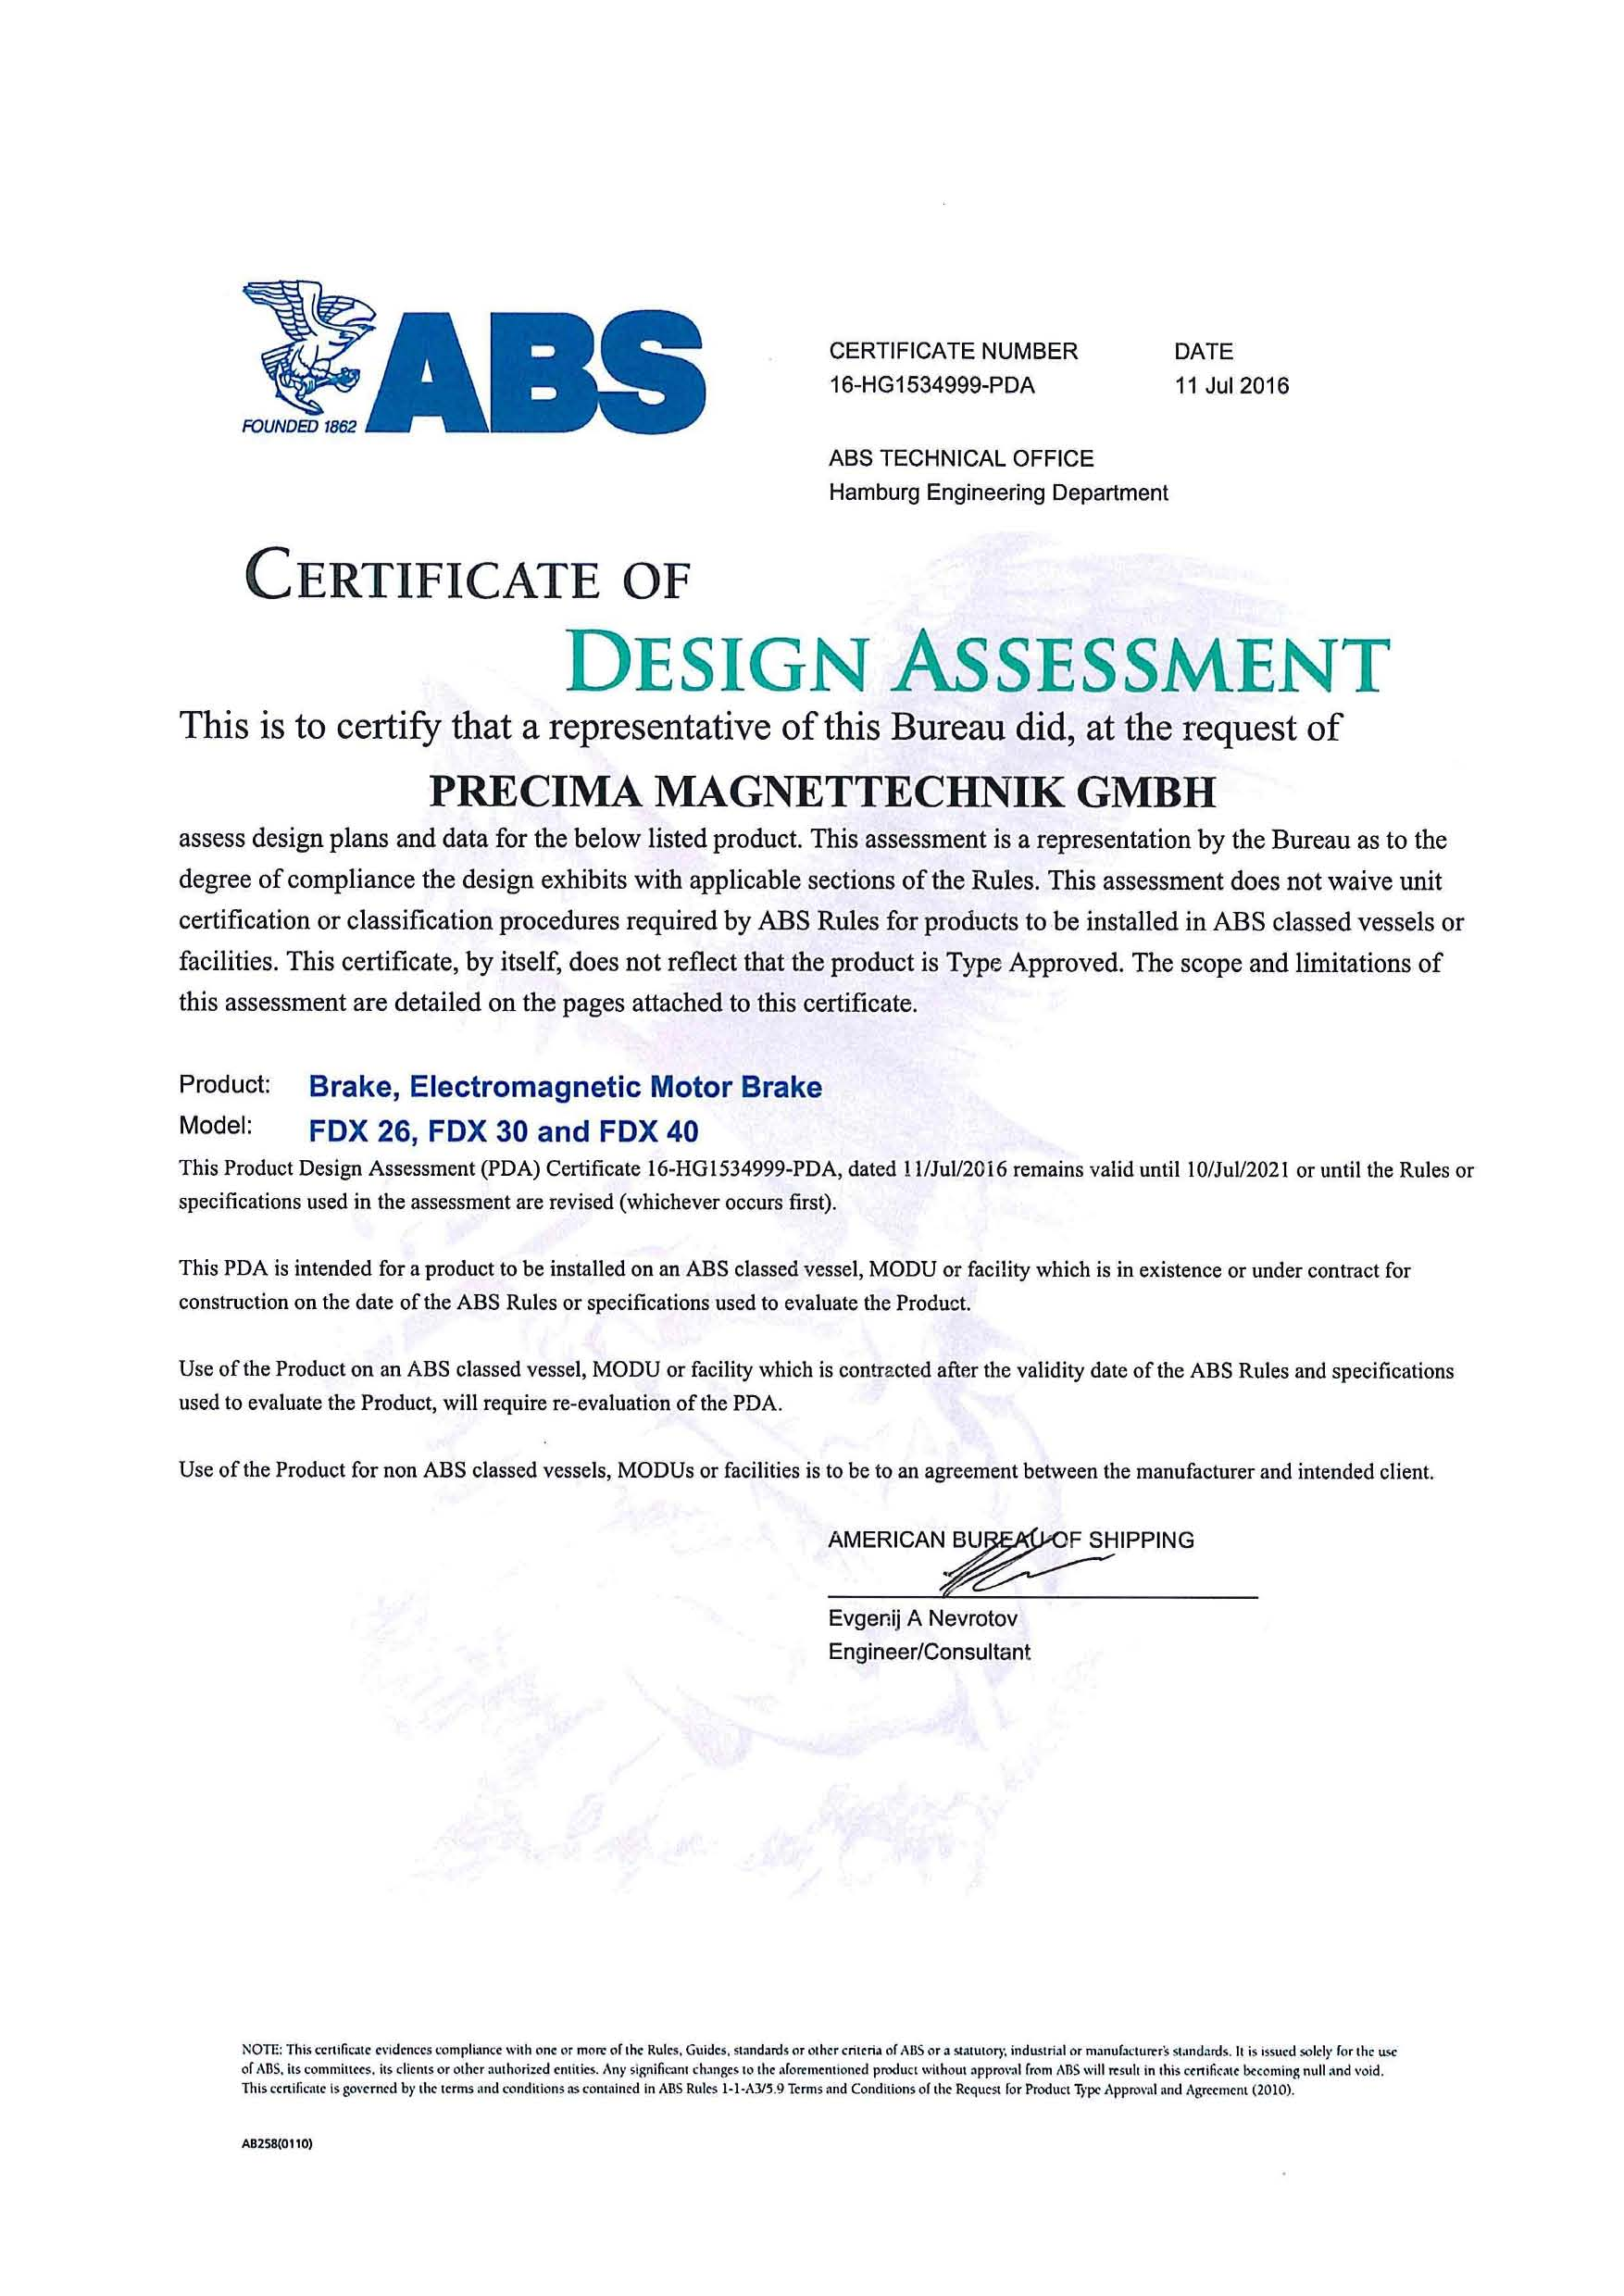 ABS Certificate of Design Assessment